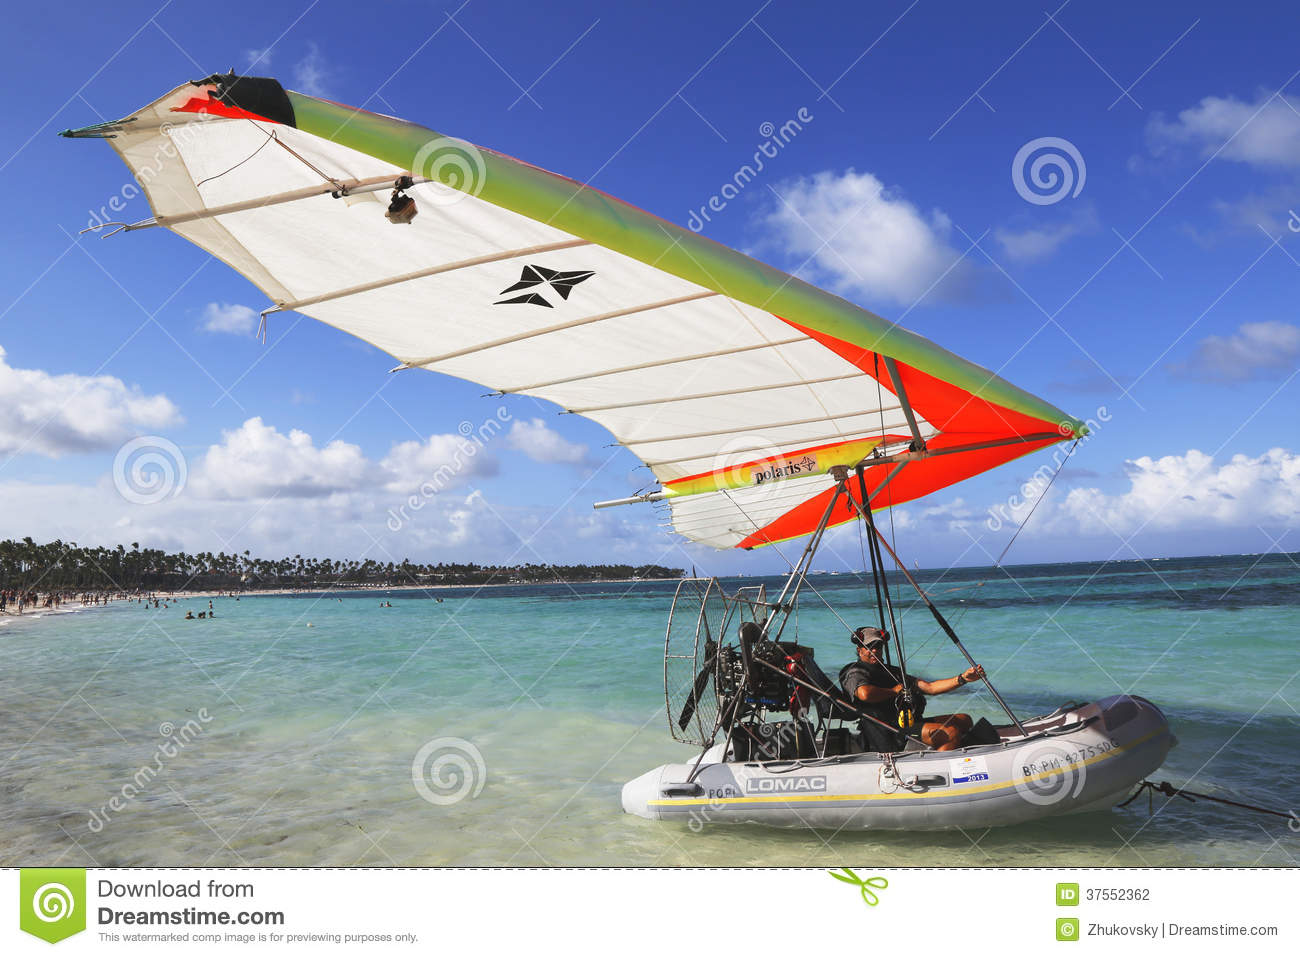 Stock Photography Flying Boat Punta Cana Dominican Republic Image37552362 in addition Indian Modern House Plans And Elevations in addition Crosswalk Texture likewise De Citadel Almere together with Stock Photo Cold Drink Image2910830. on design of houses plan